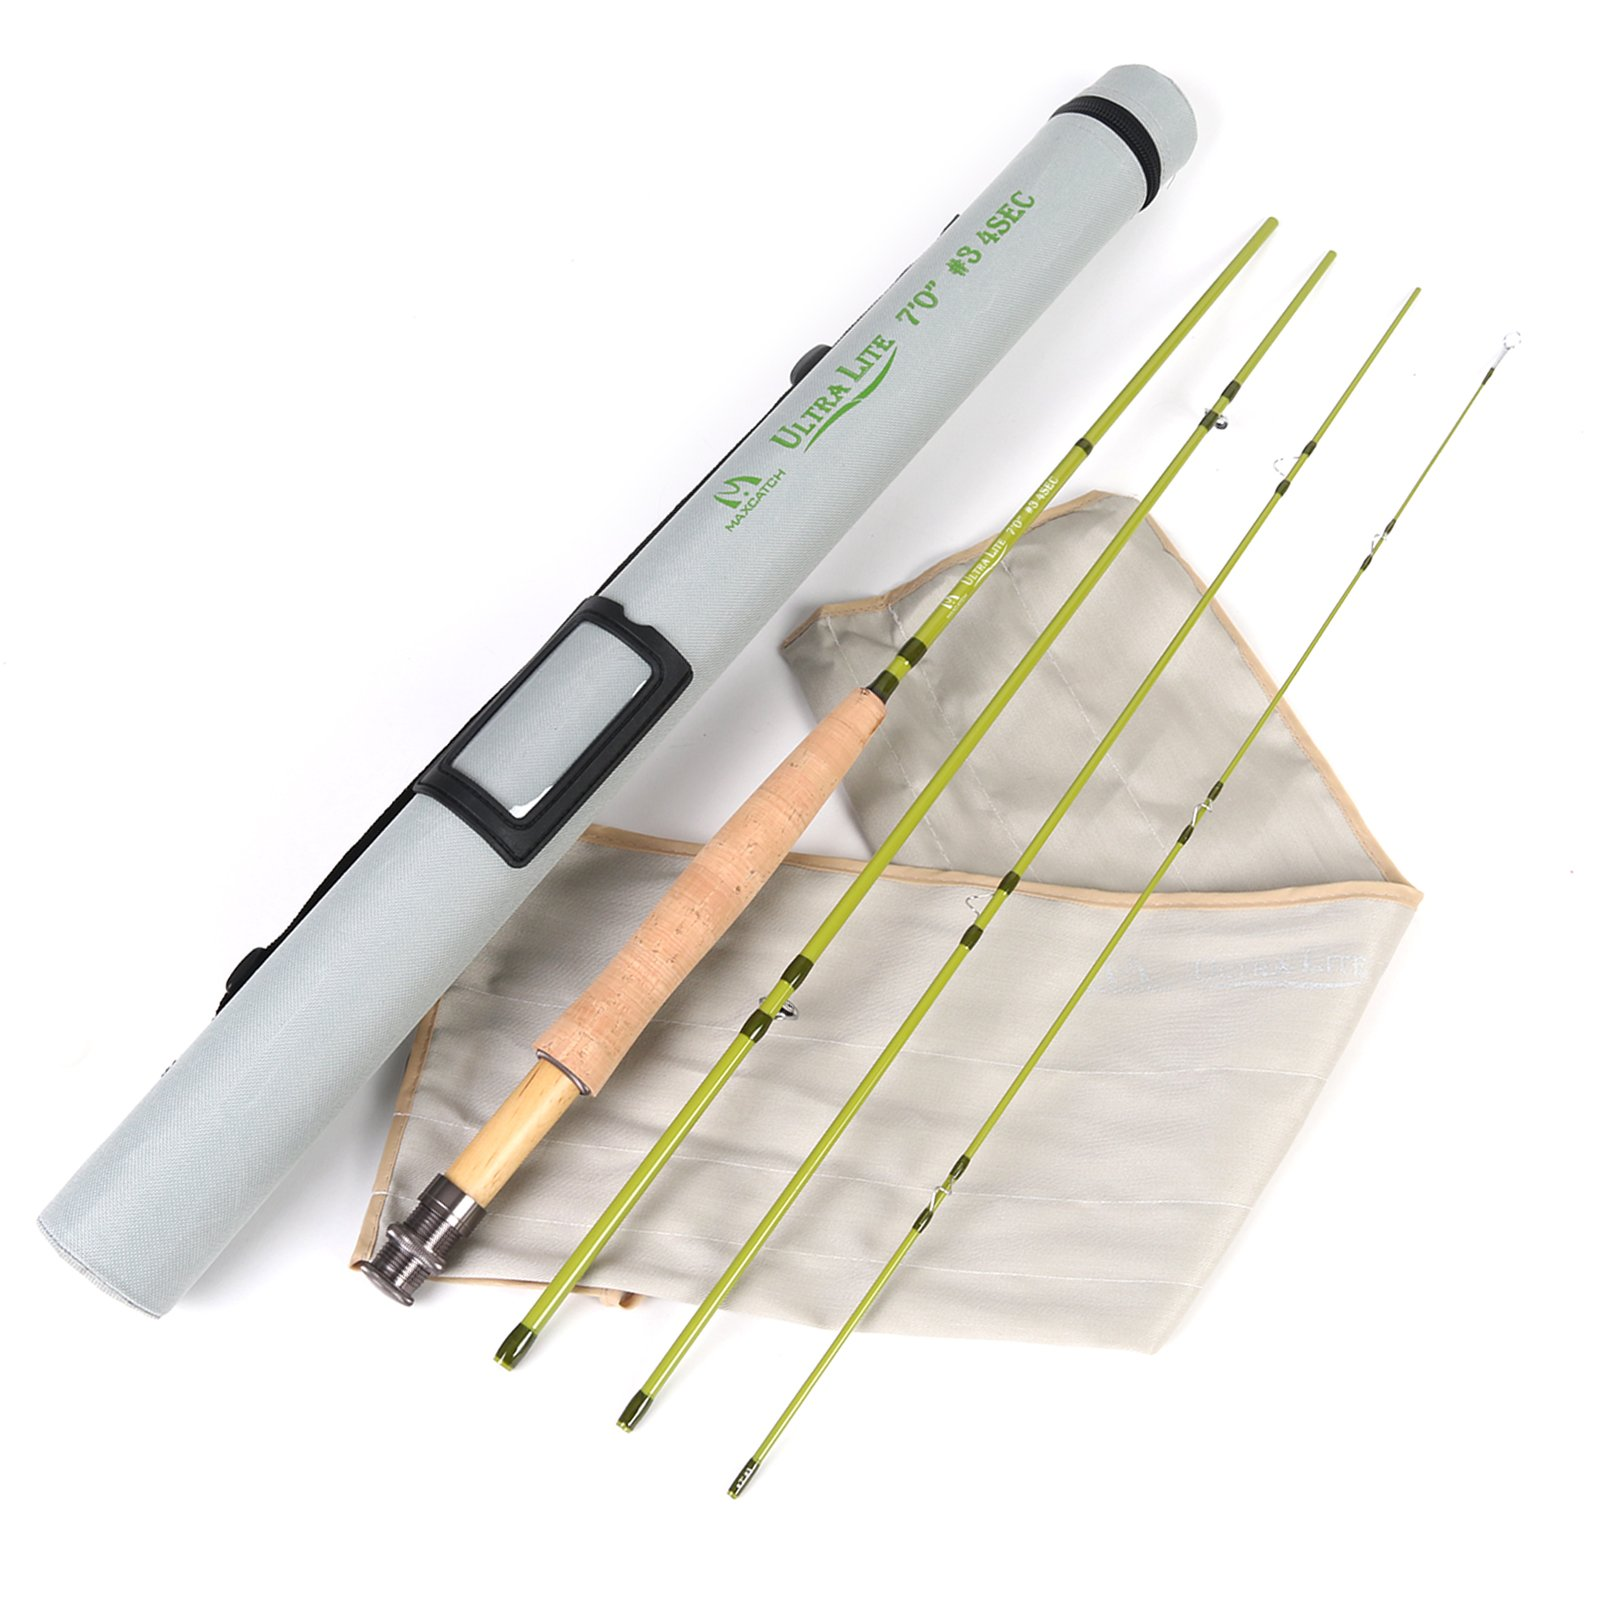 M MAXIMUMCATCH Maxcatch Ultra-lite Fly Rod for Streams Panfish/Trout Fishing 1/2/3 Weight (3-Weight 7ft 4-Piece)